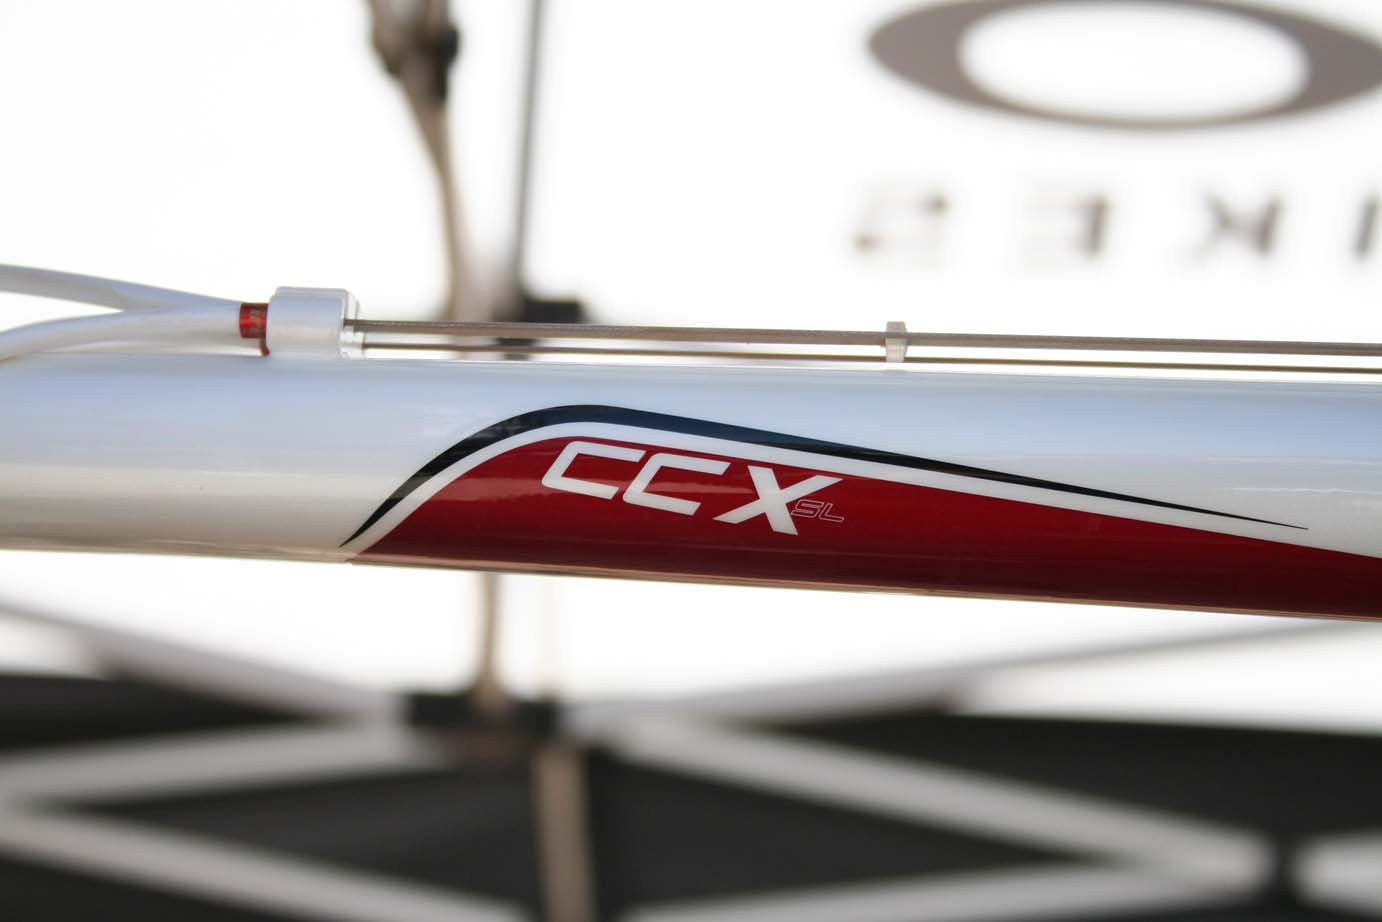 The CCXSL is the top of the line.